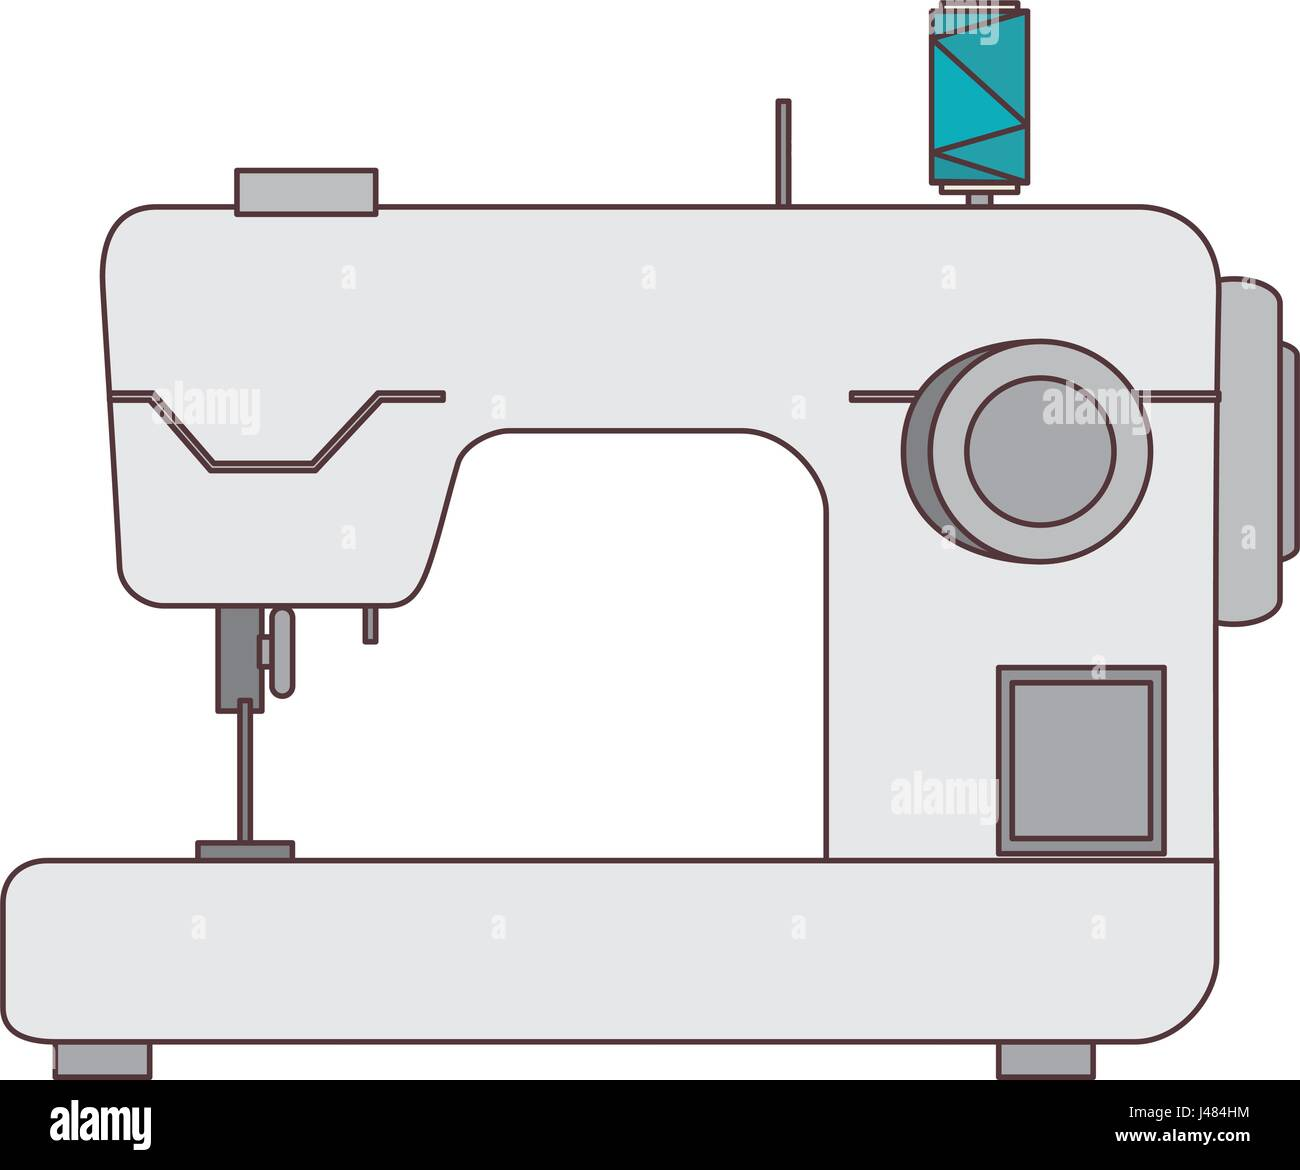 Household Sewing Machine Stock Photos Diagram Car Interior Design Isolated Icon Image